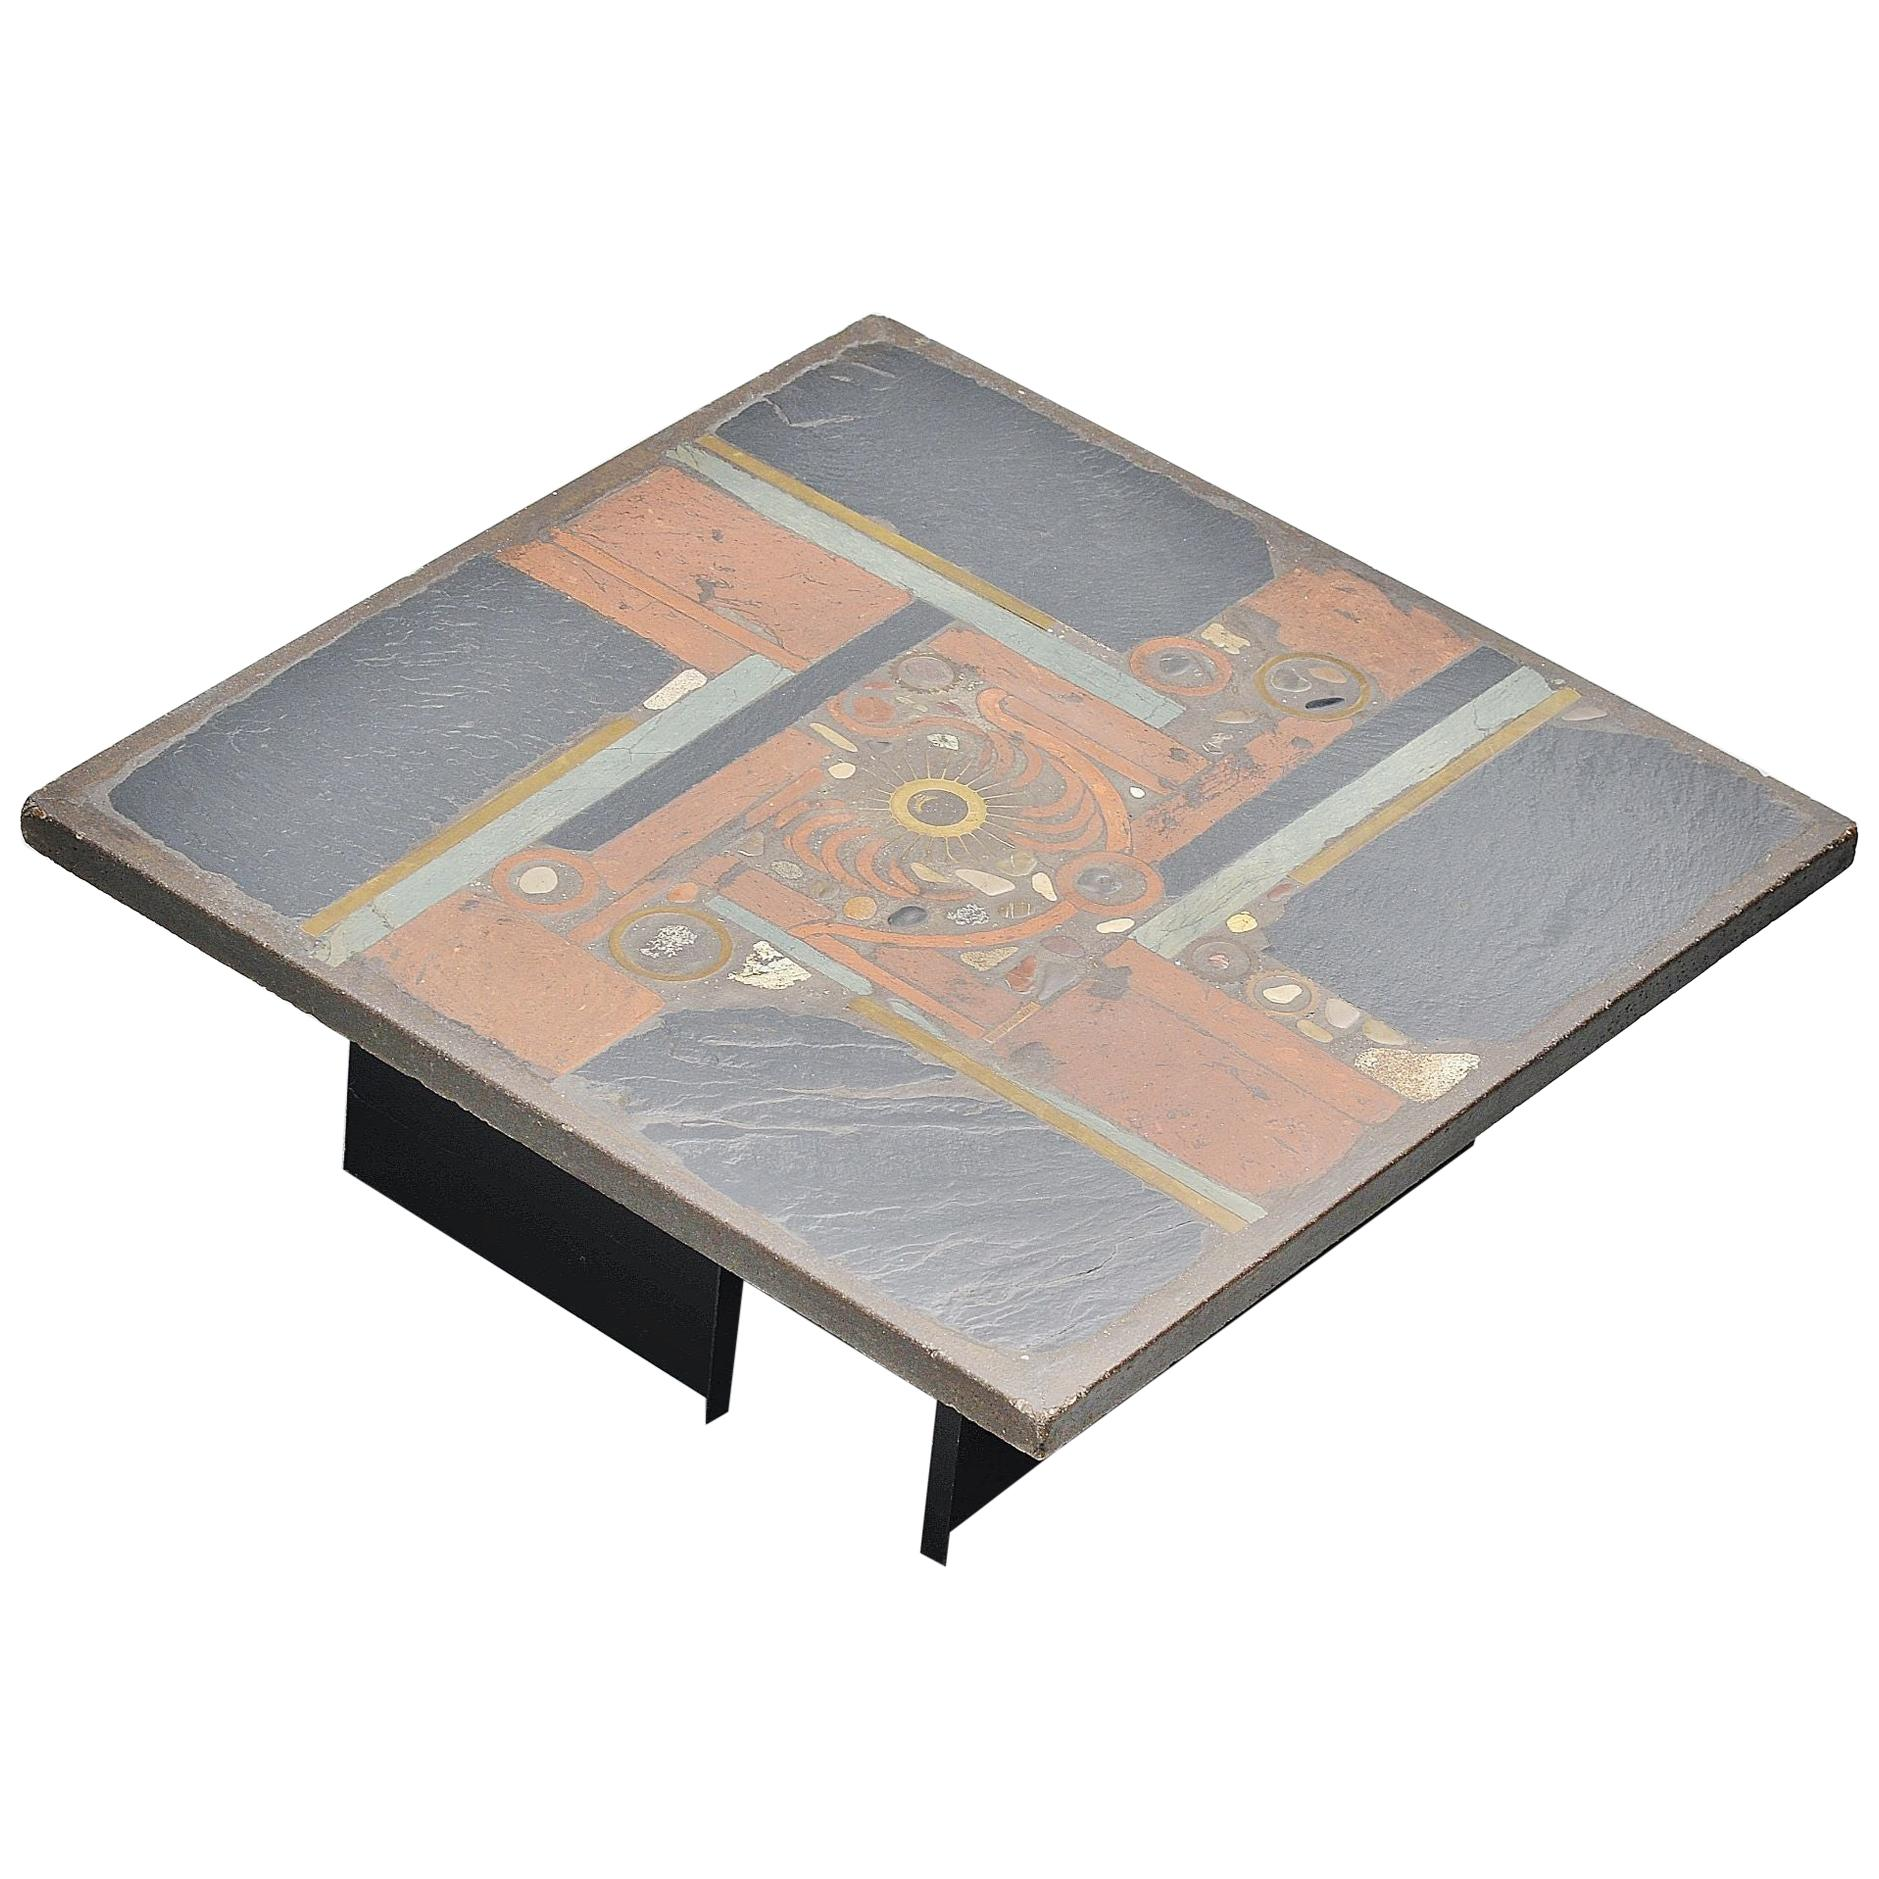 Paul Kingma Square Coffee Table Slate Top, Holland, 1978